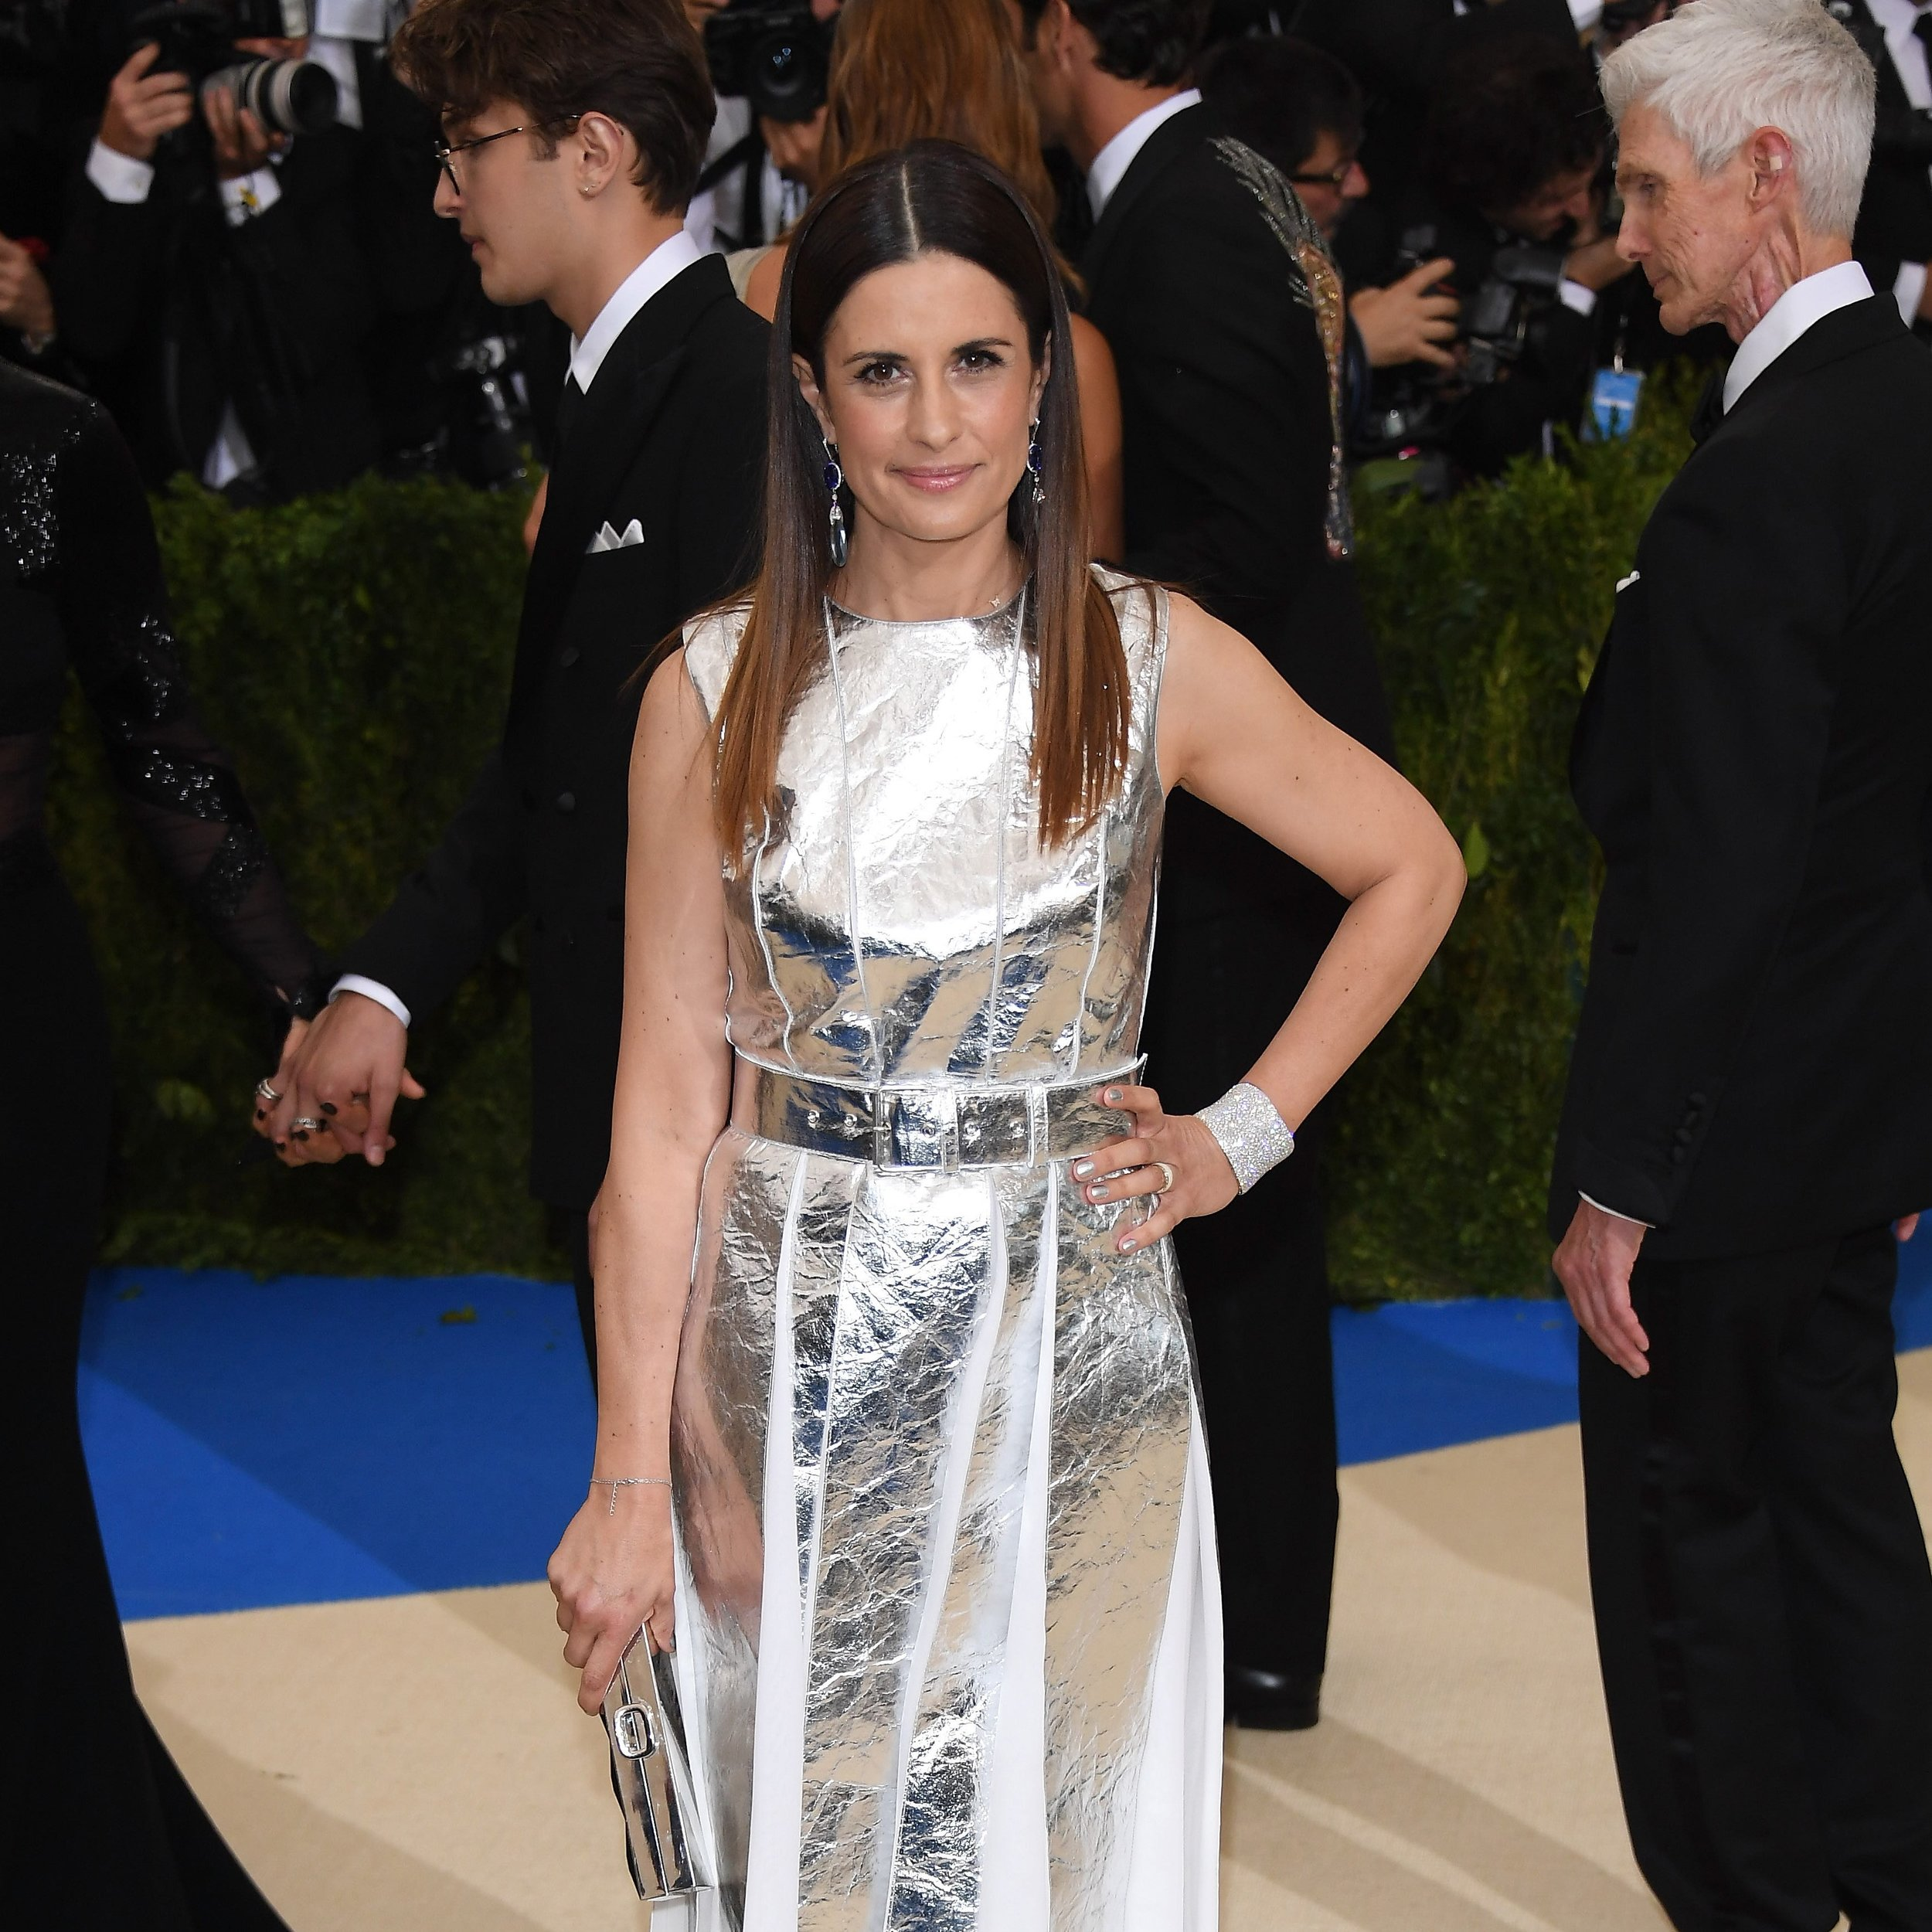 In Laura Strambi, made from silver Pinatex, at the Met Gala 2017